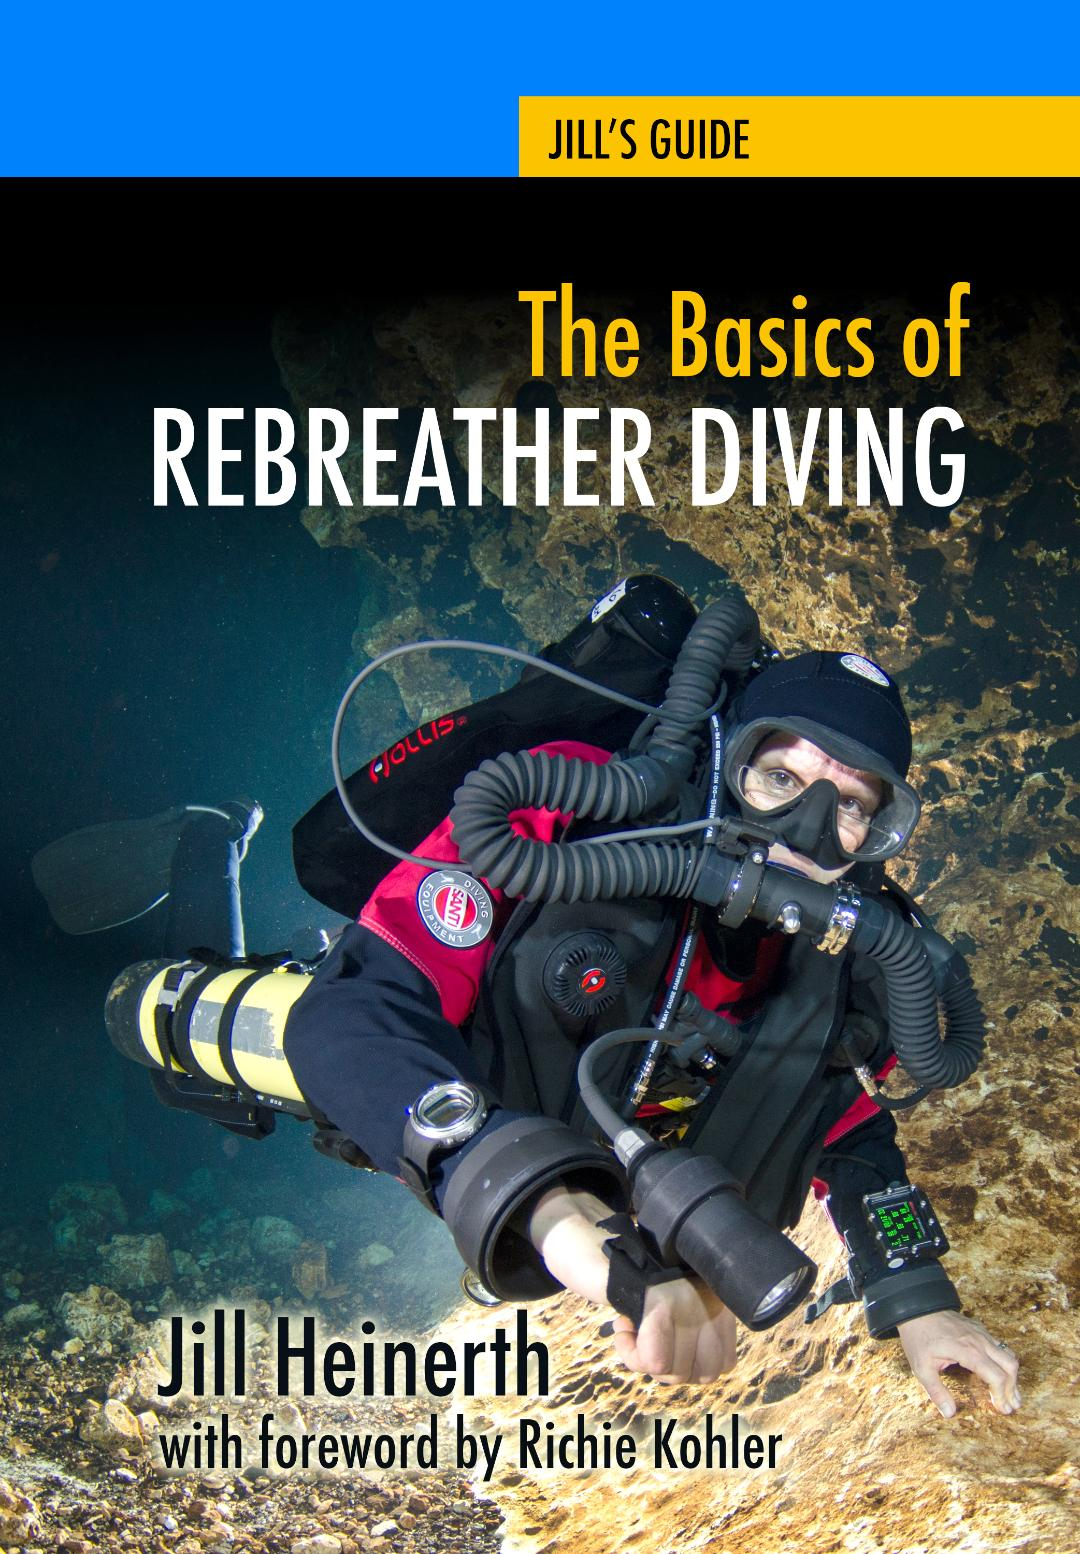 The Basics of Rebreather Diving (softcover book)